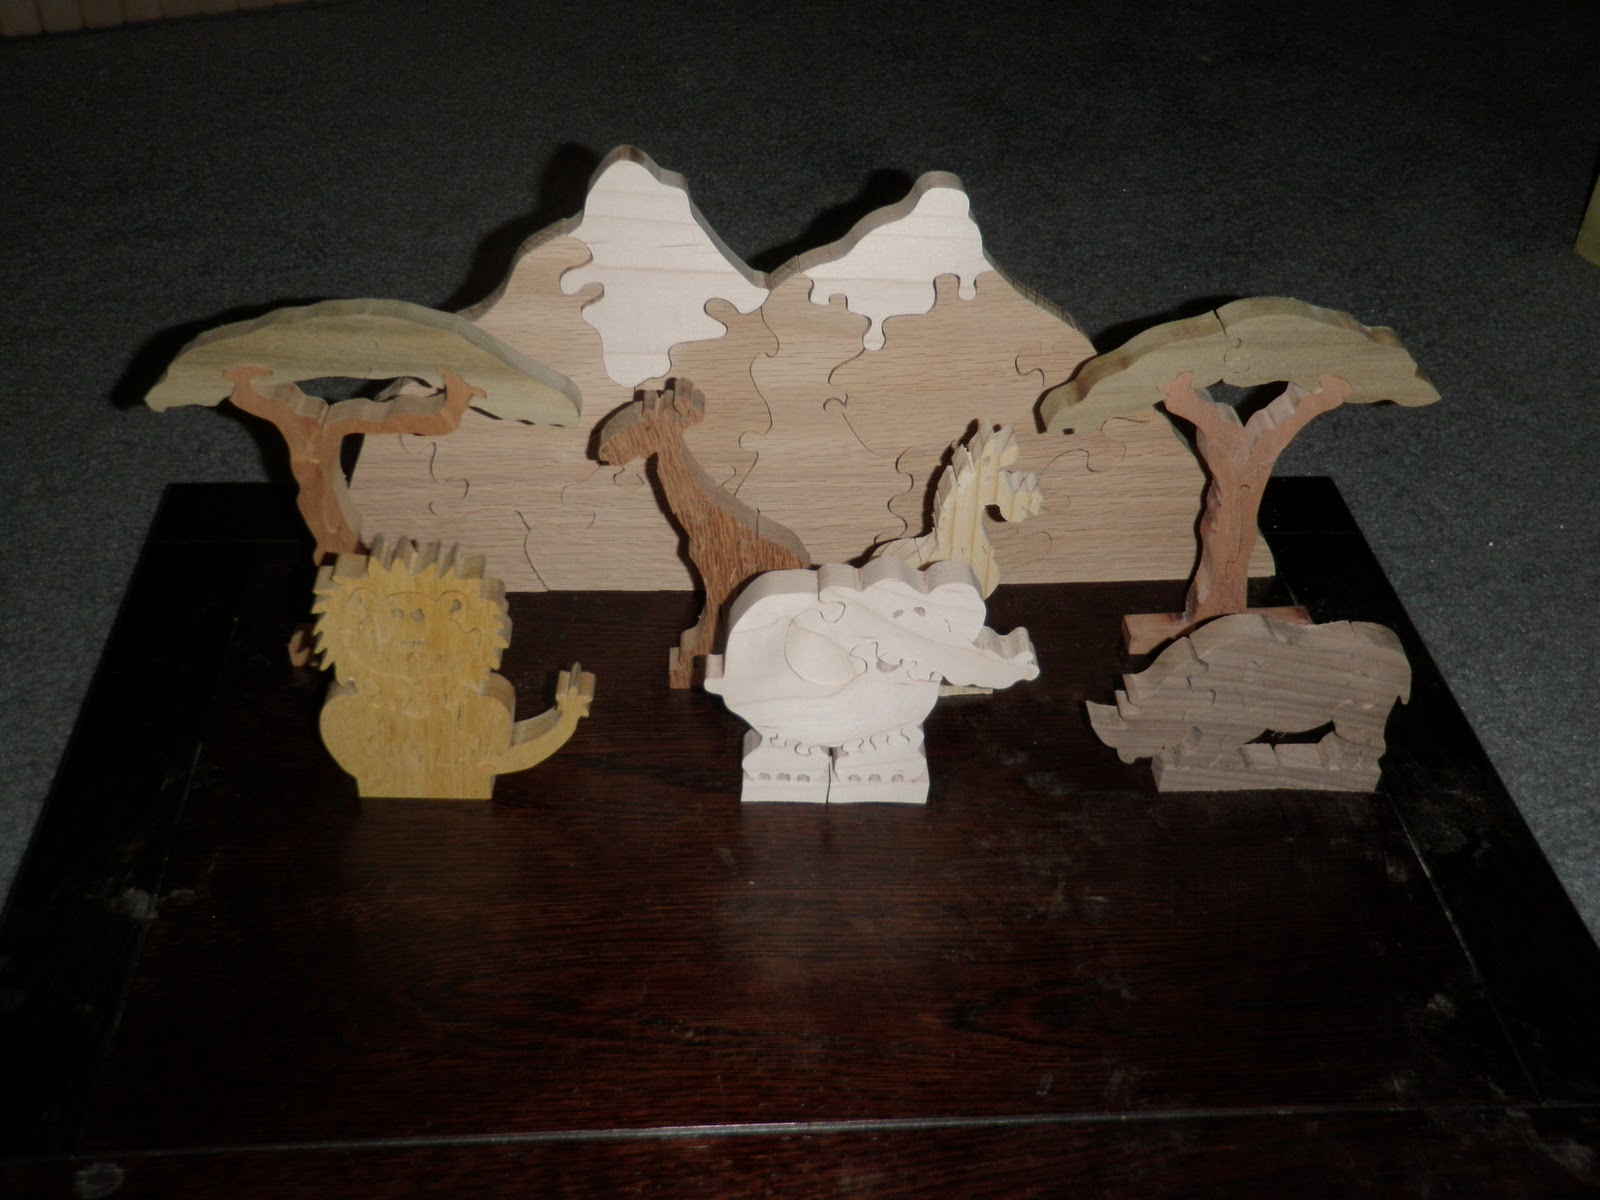 scroll saw projects Scroll saw projects - a hobby for woodworking beginners and enthusiasts.